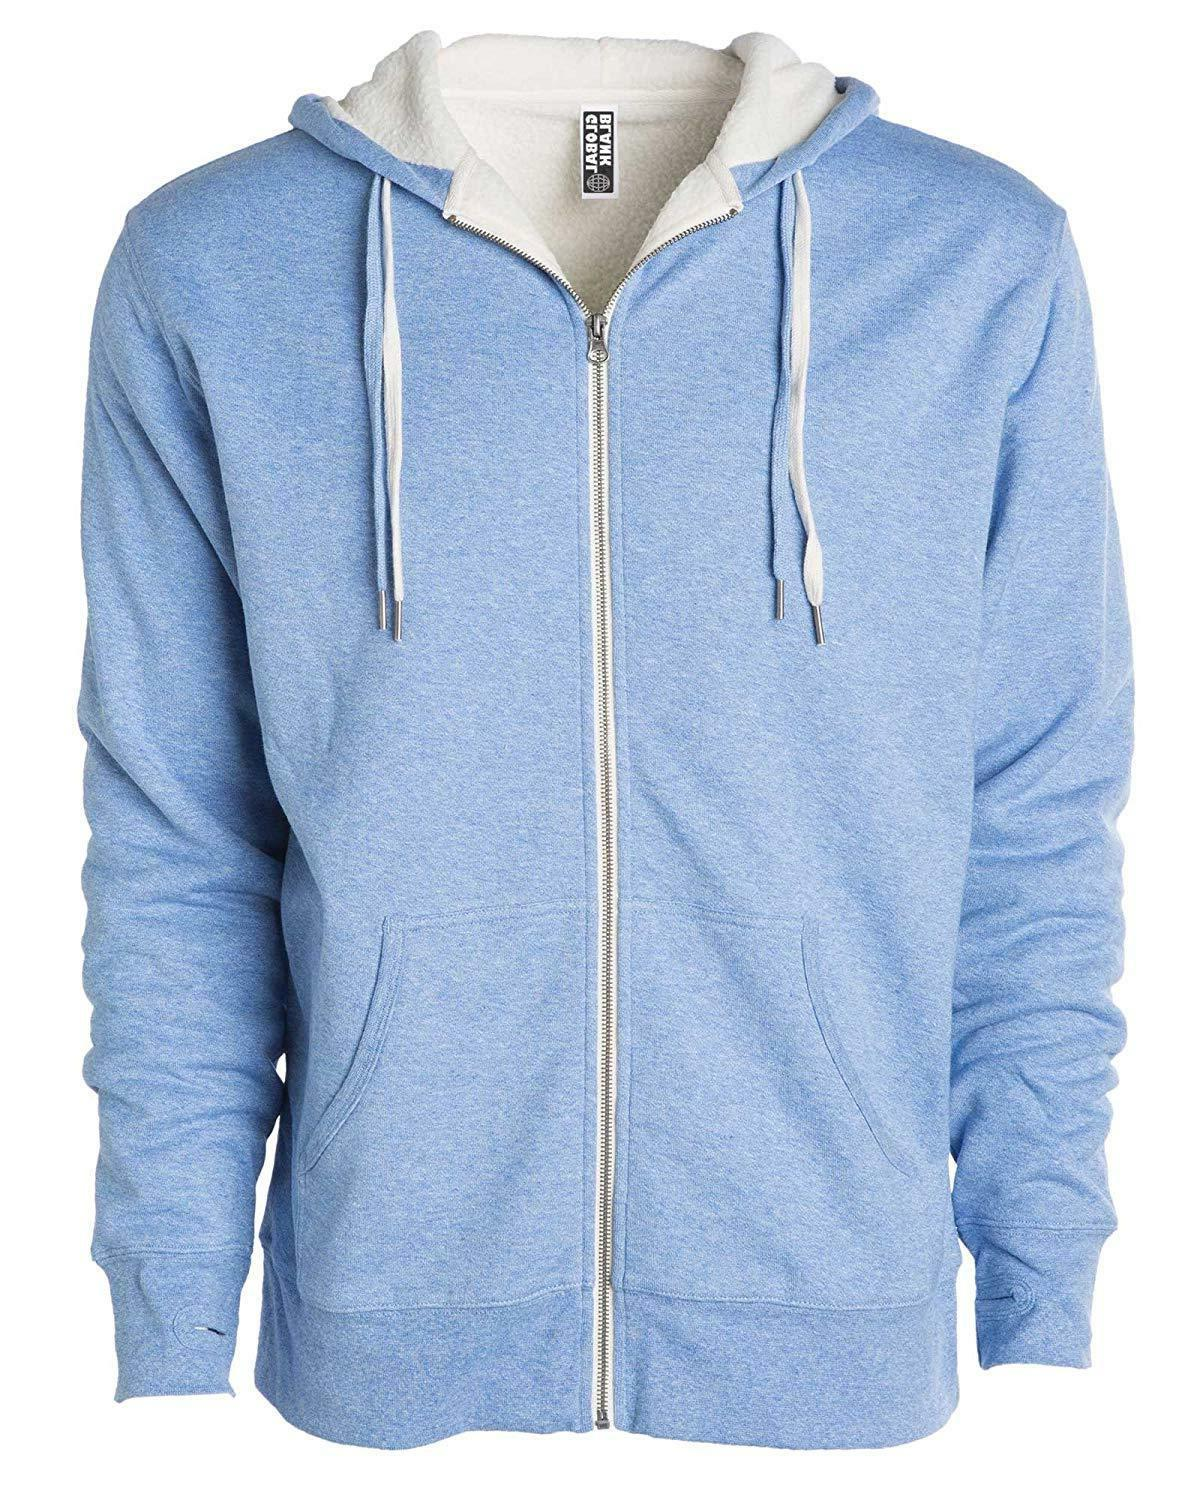 Global Heavyweight Lined Zip Up Fleece Hoodie H